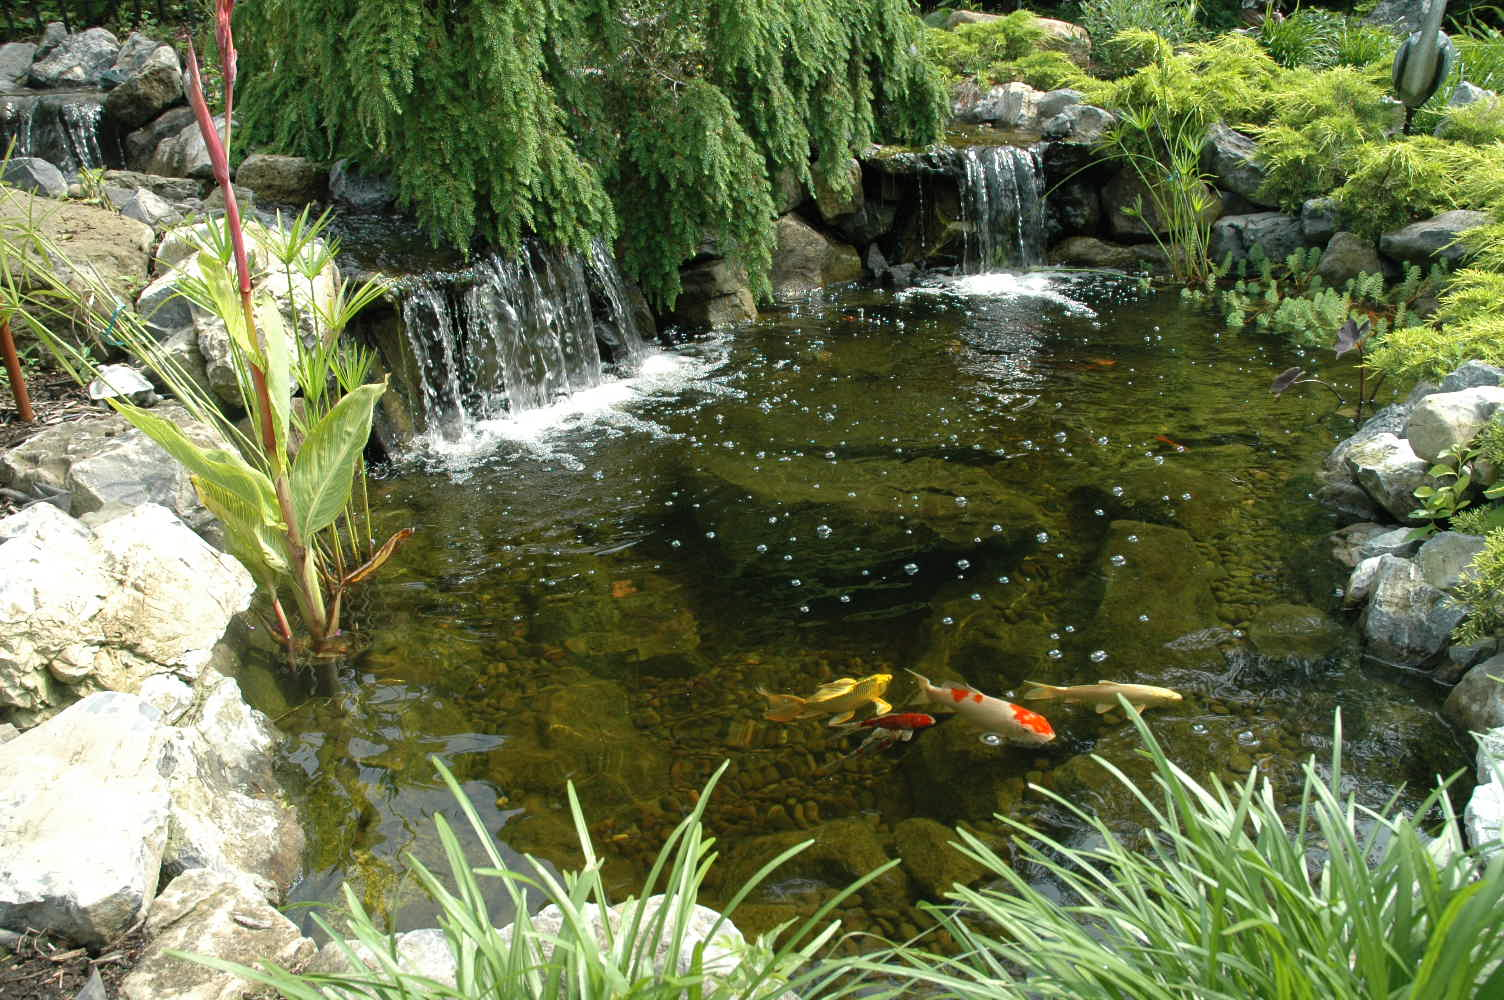 Are koi carp difficult to keep in backyard ponds the for Koi holding pool